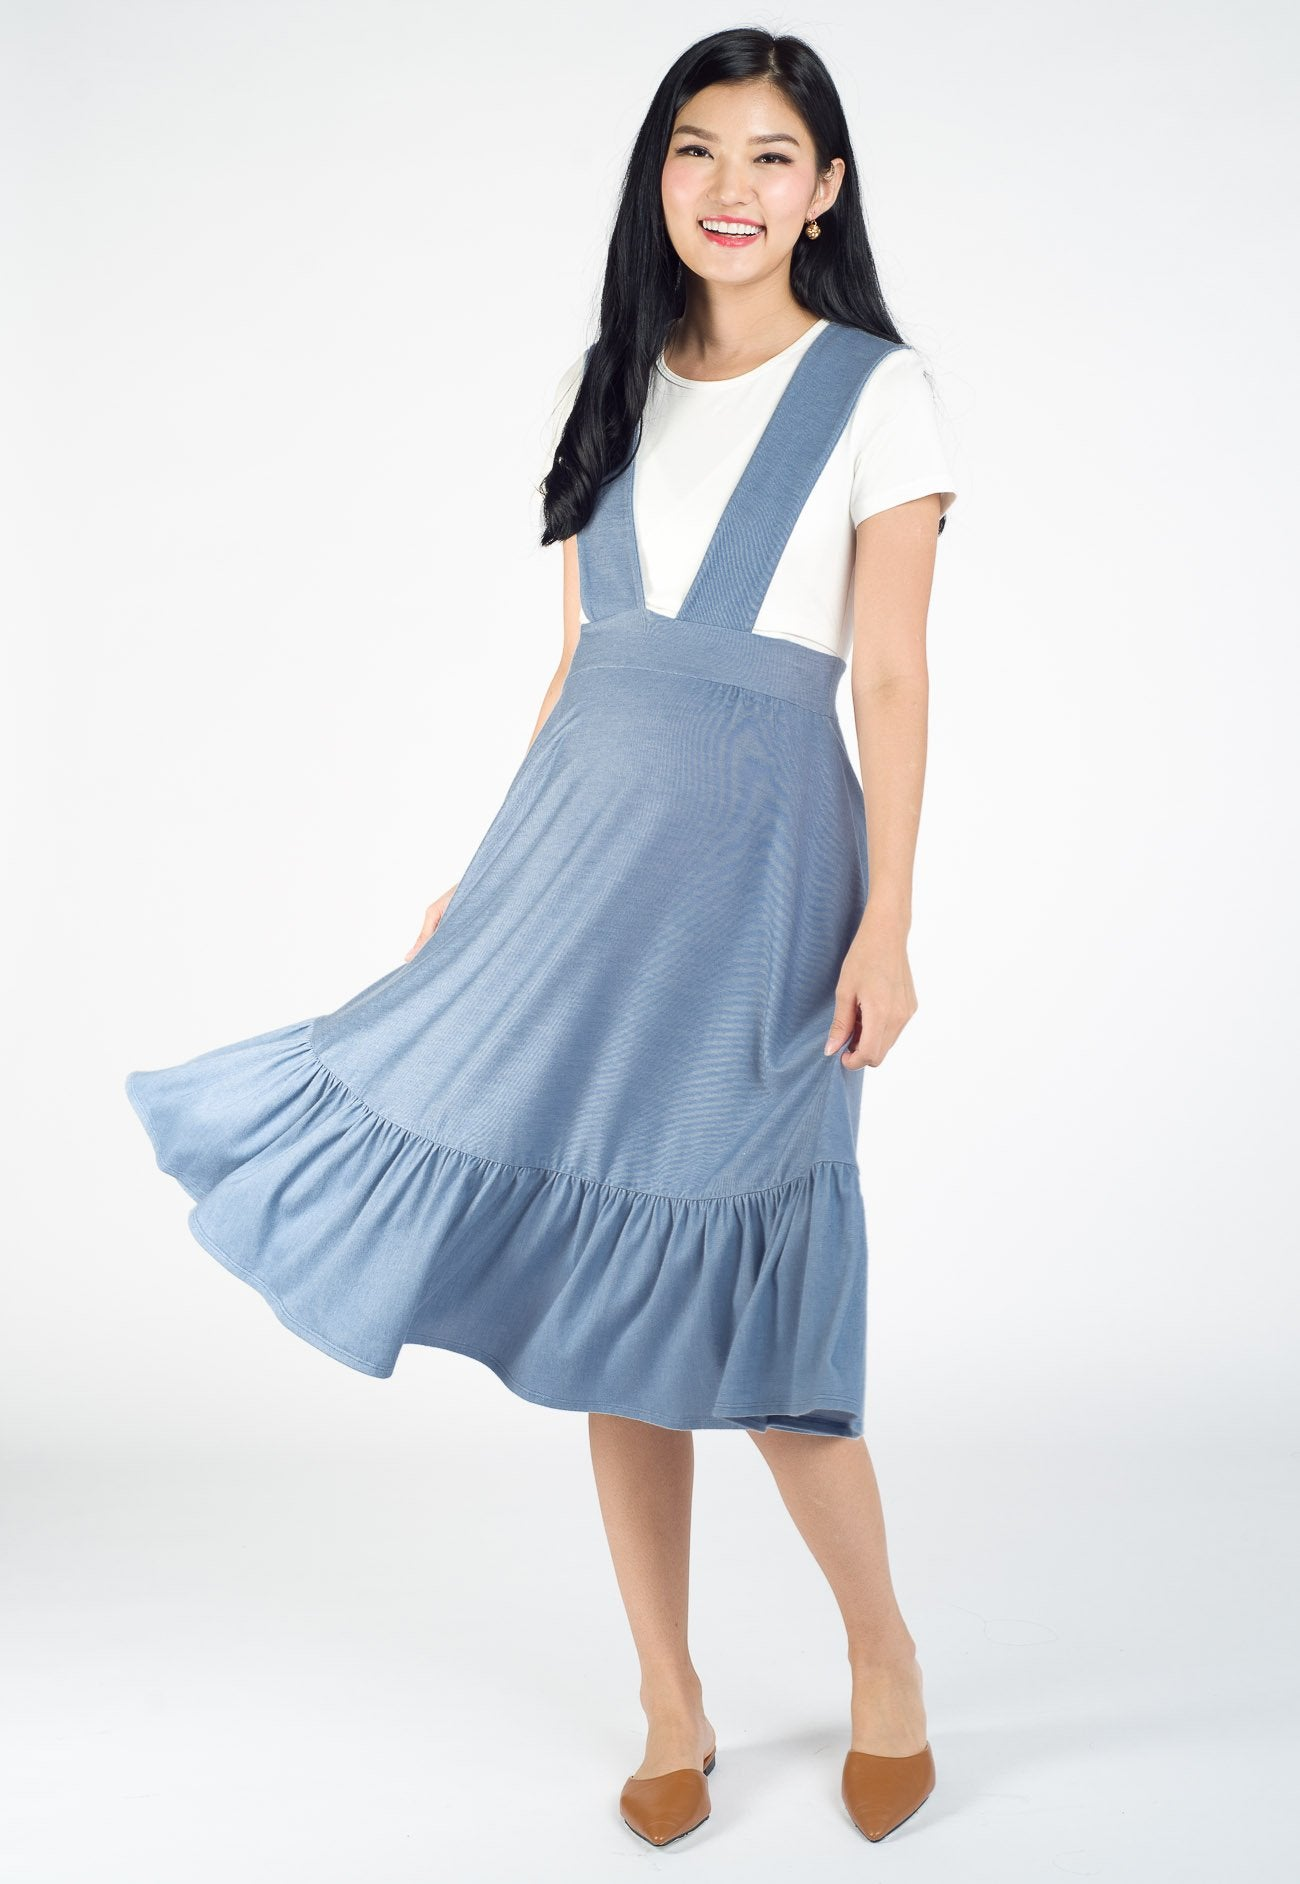 Kyle Overall Nursing Dress in Blue  by Jump Eat Cry - Maternity and nursing wear